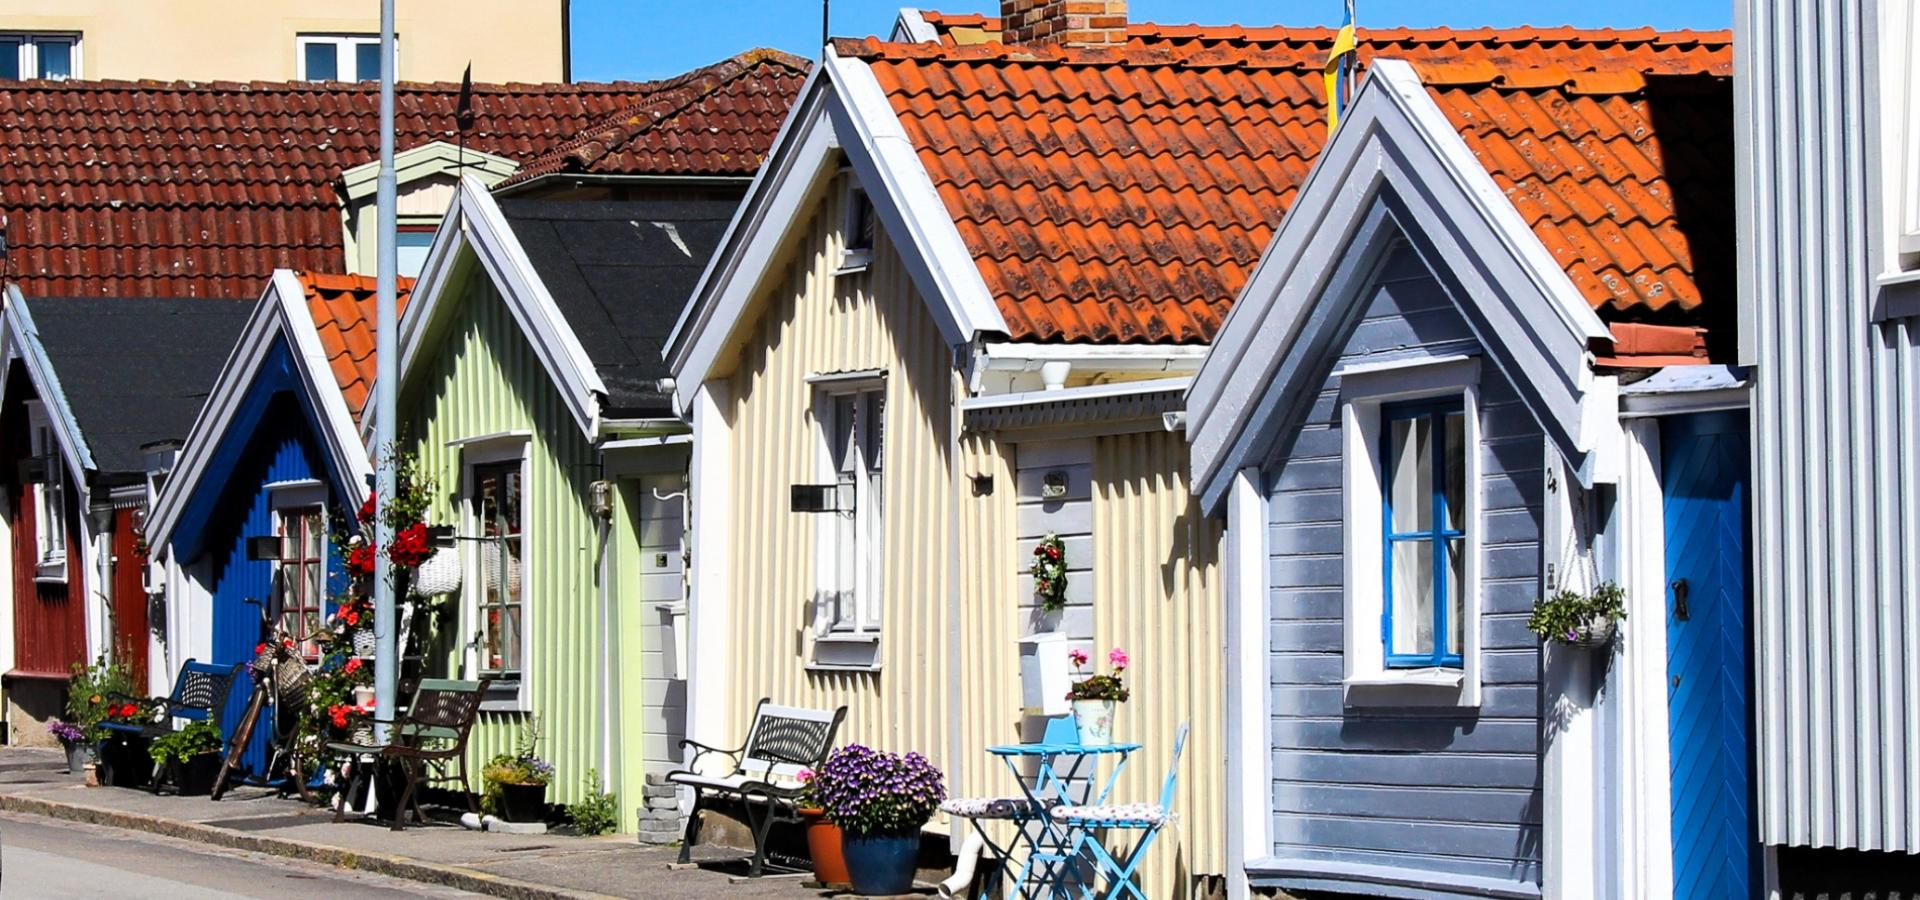 Cities in Blekinge, southern Sweden - Visit Blekinge